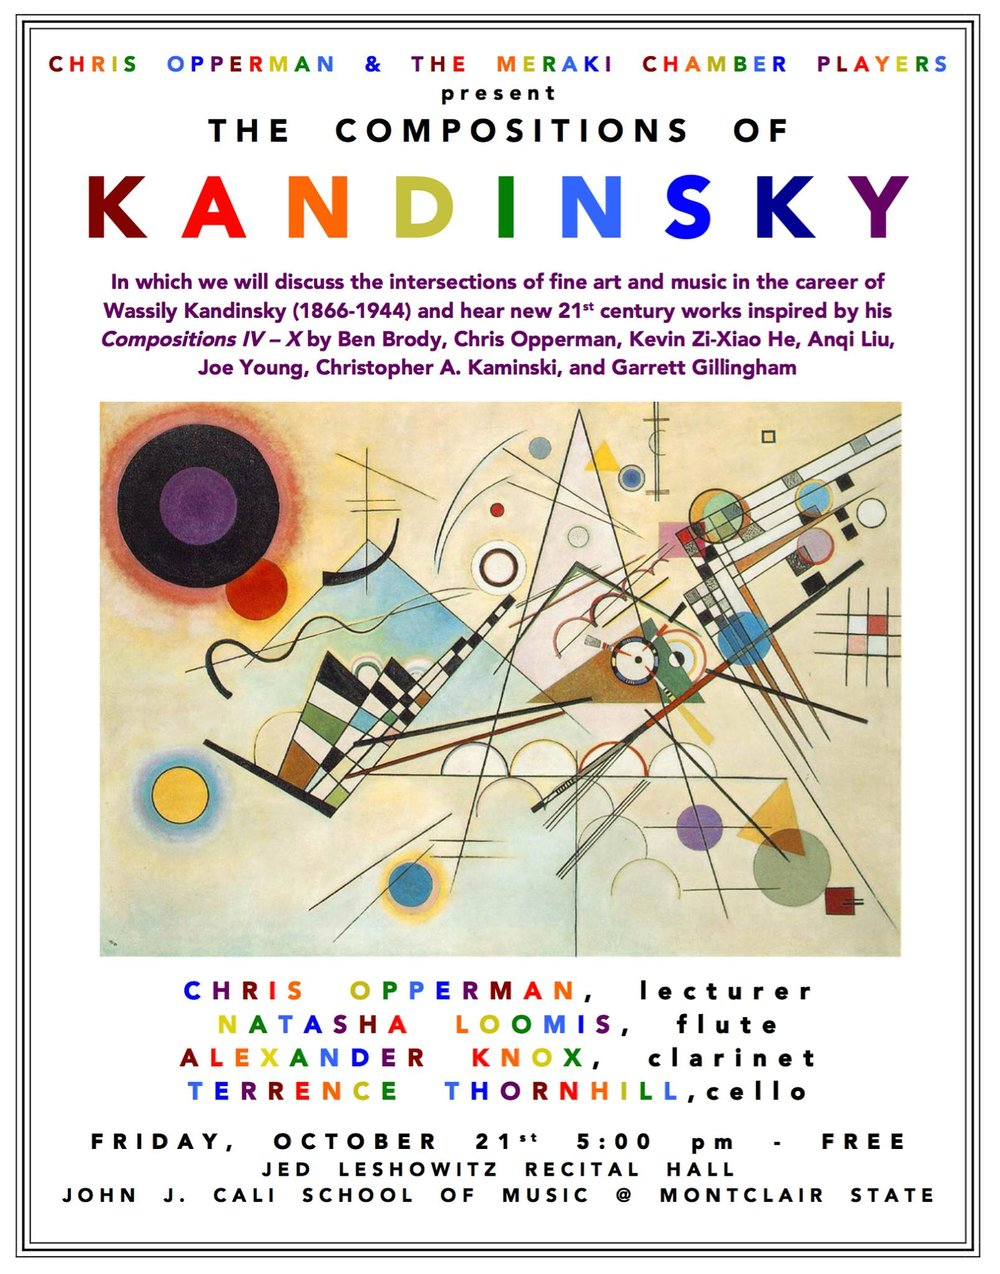 Chris Opperman, my first composition teacher, had the Meraki Chamber Players come by Montclair State University to do the Kandinsky Concert.